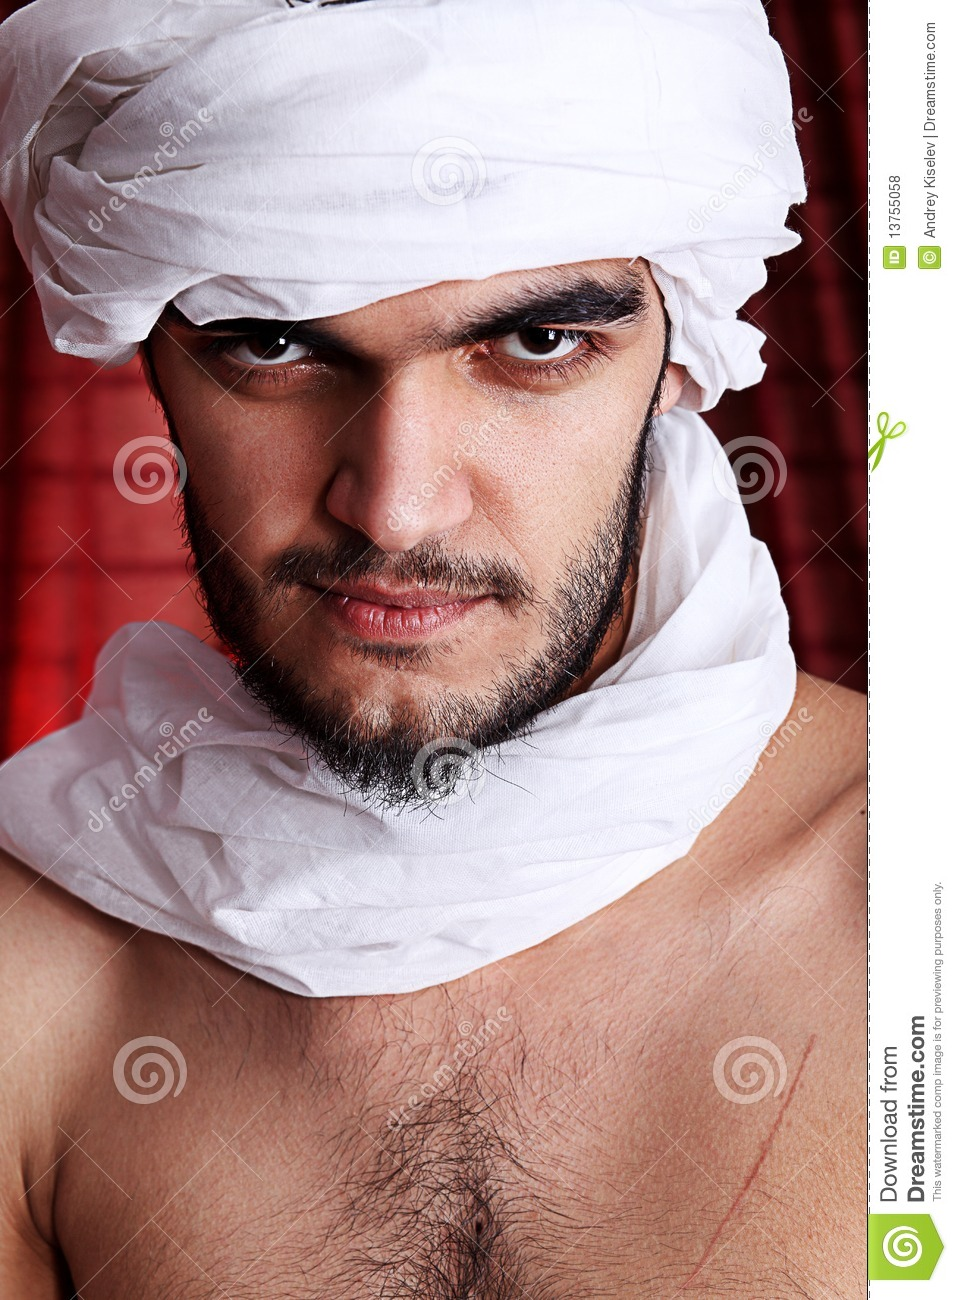 Arabian man picture 59